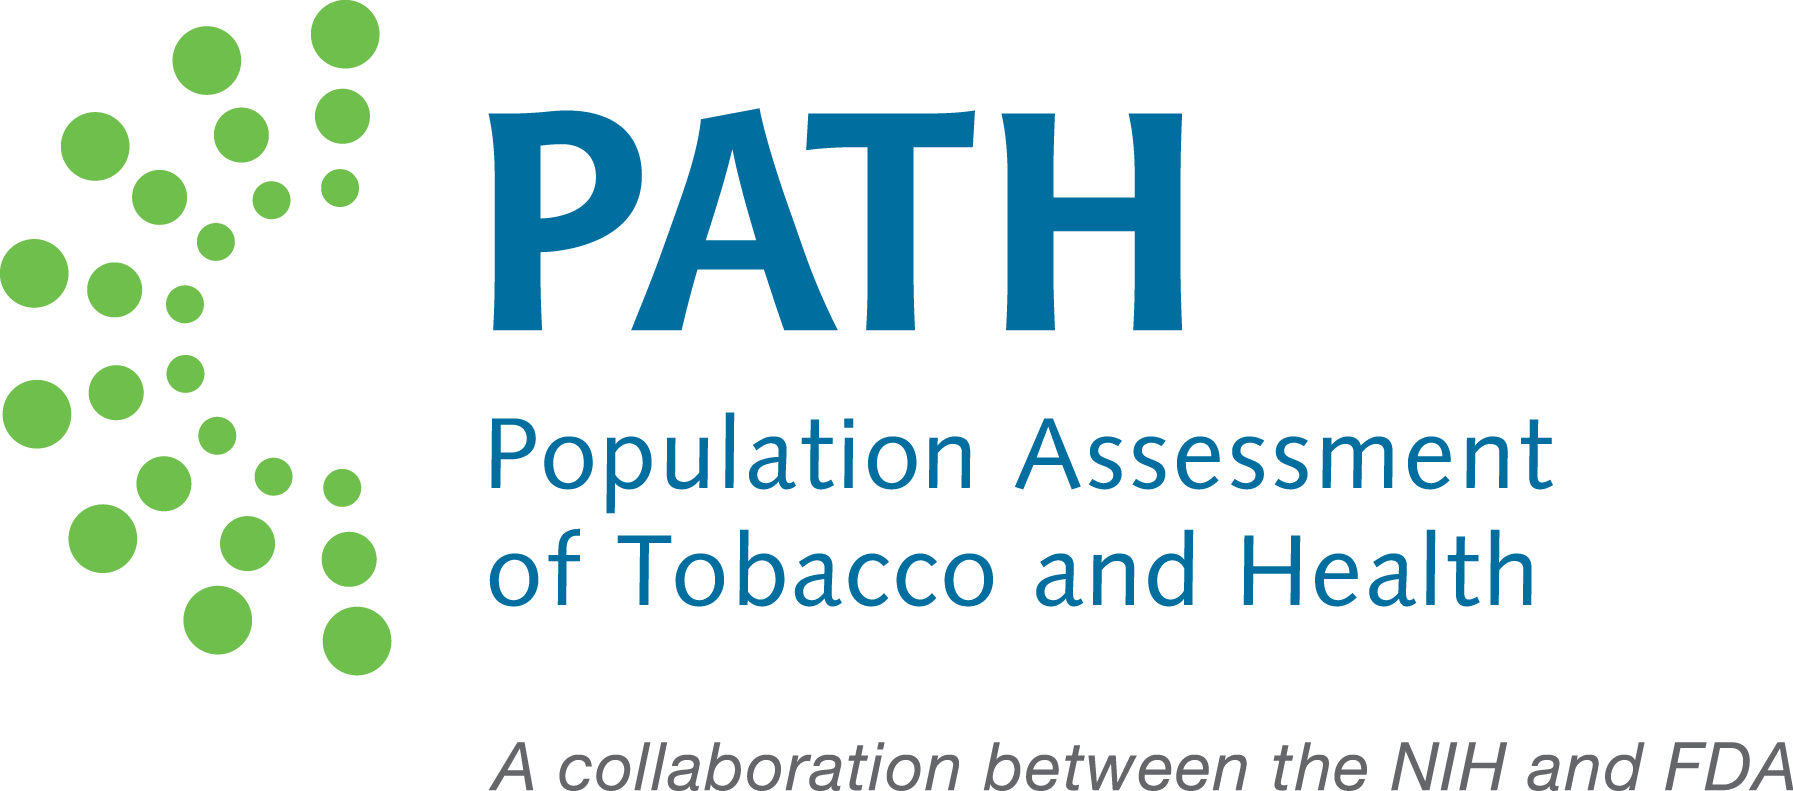 Population Assessment of Tobacco and Health